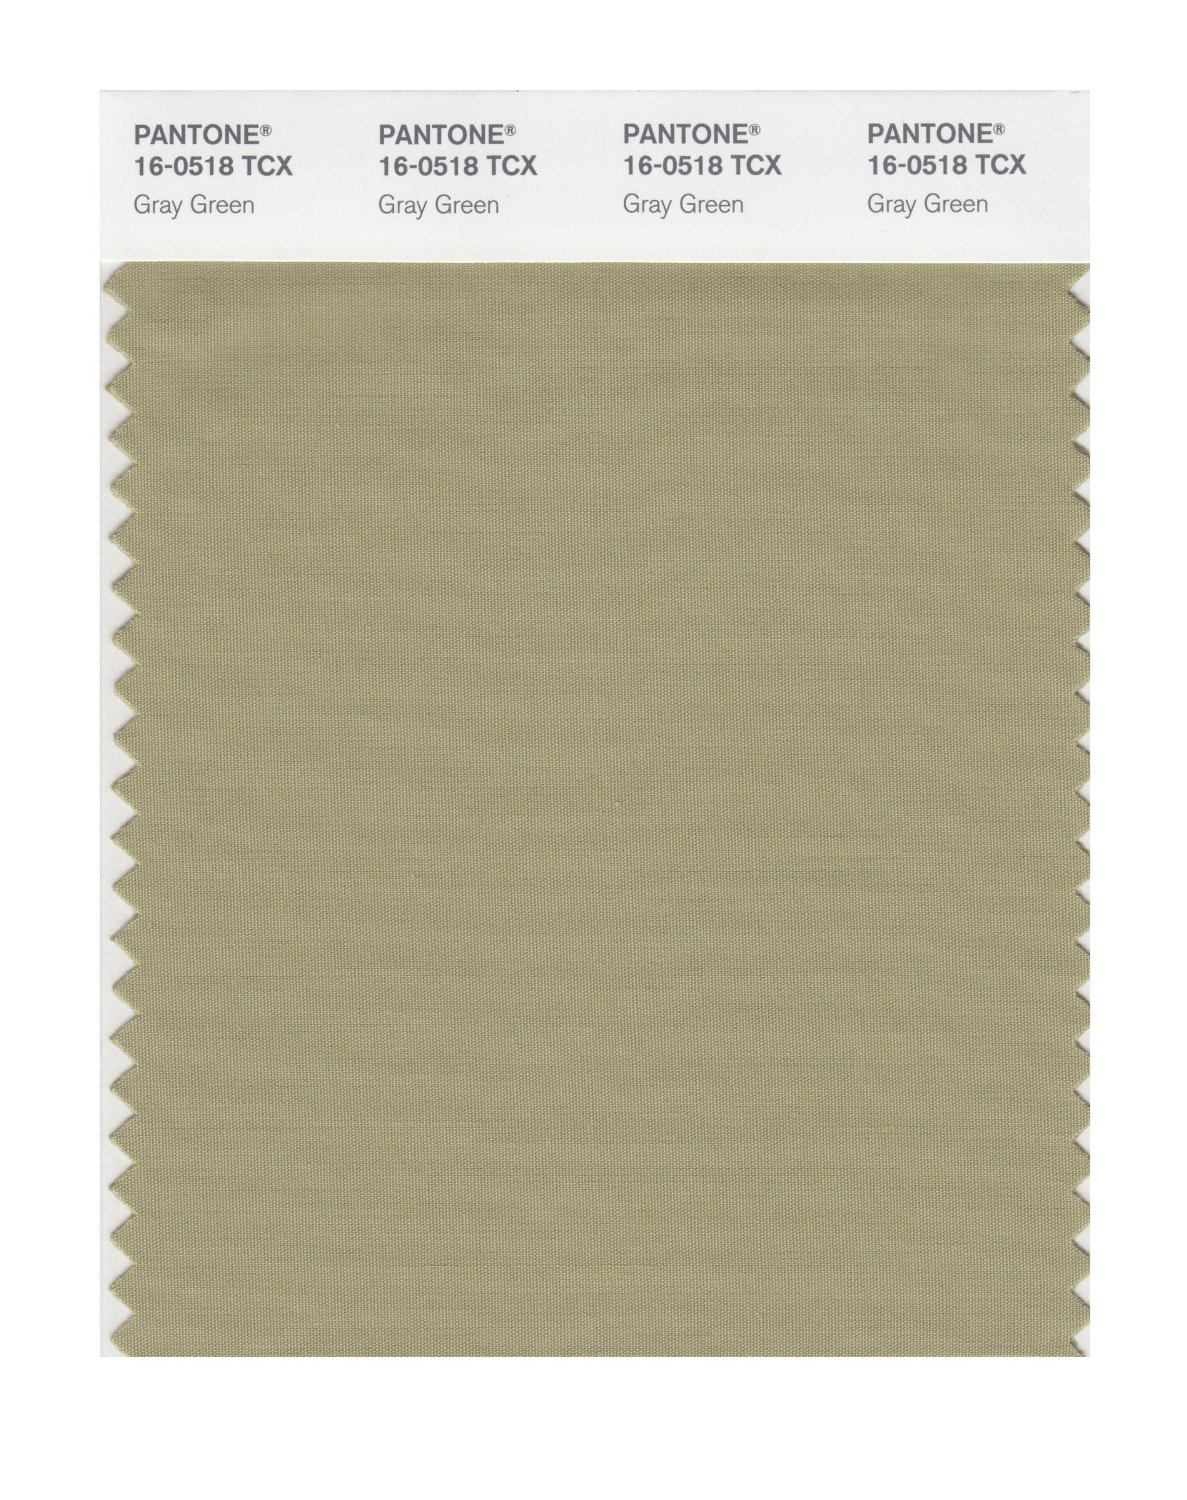 Pantone Smart Swatch 16-0518 Gray Green